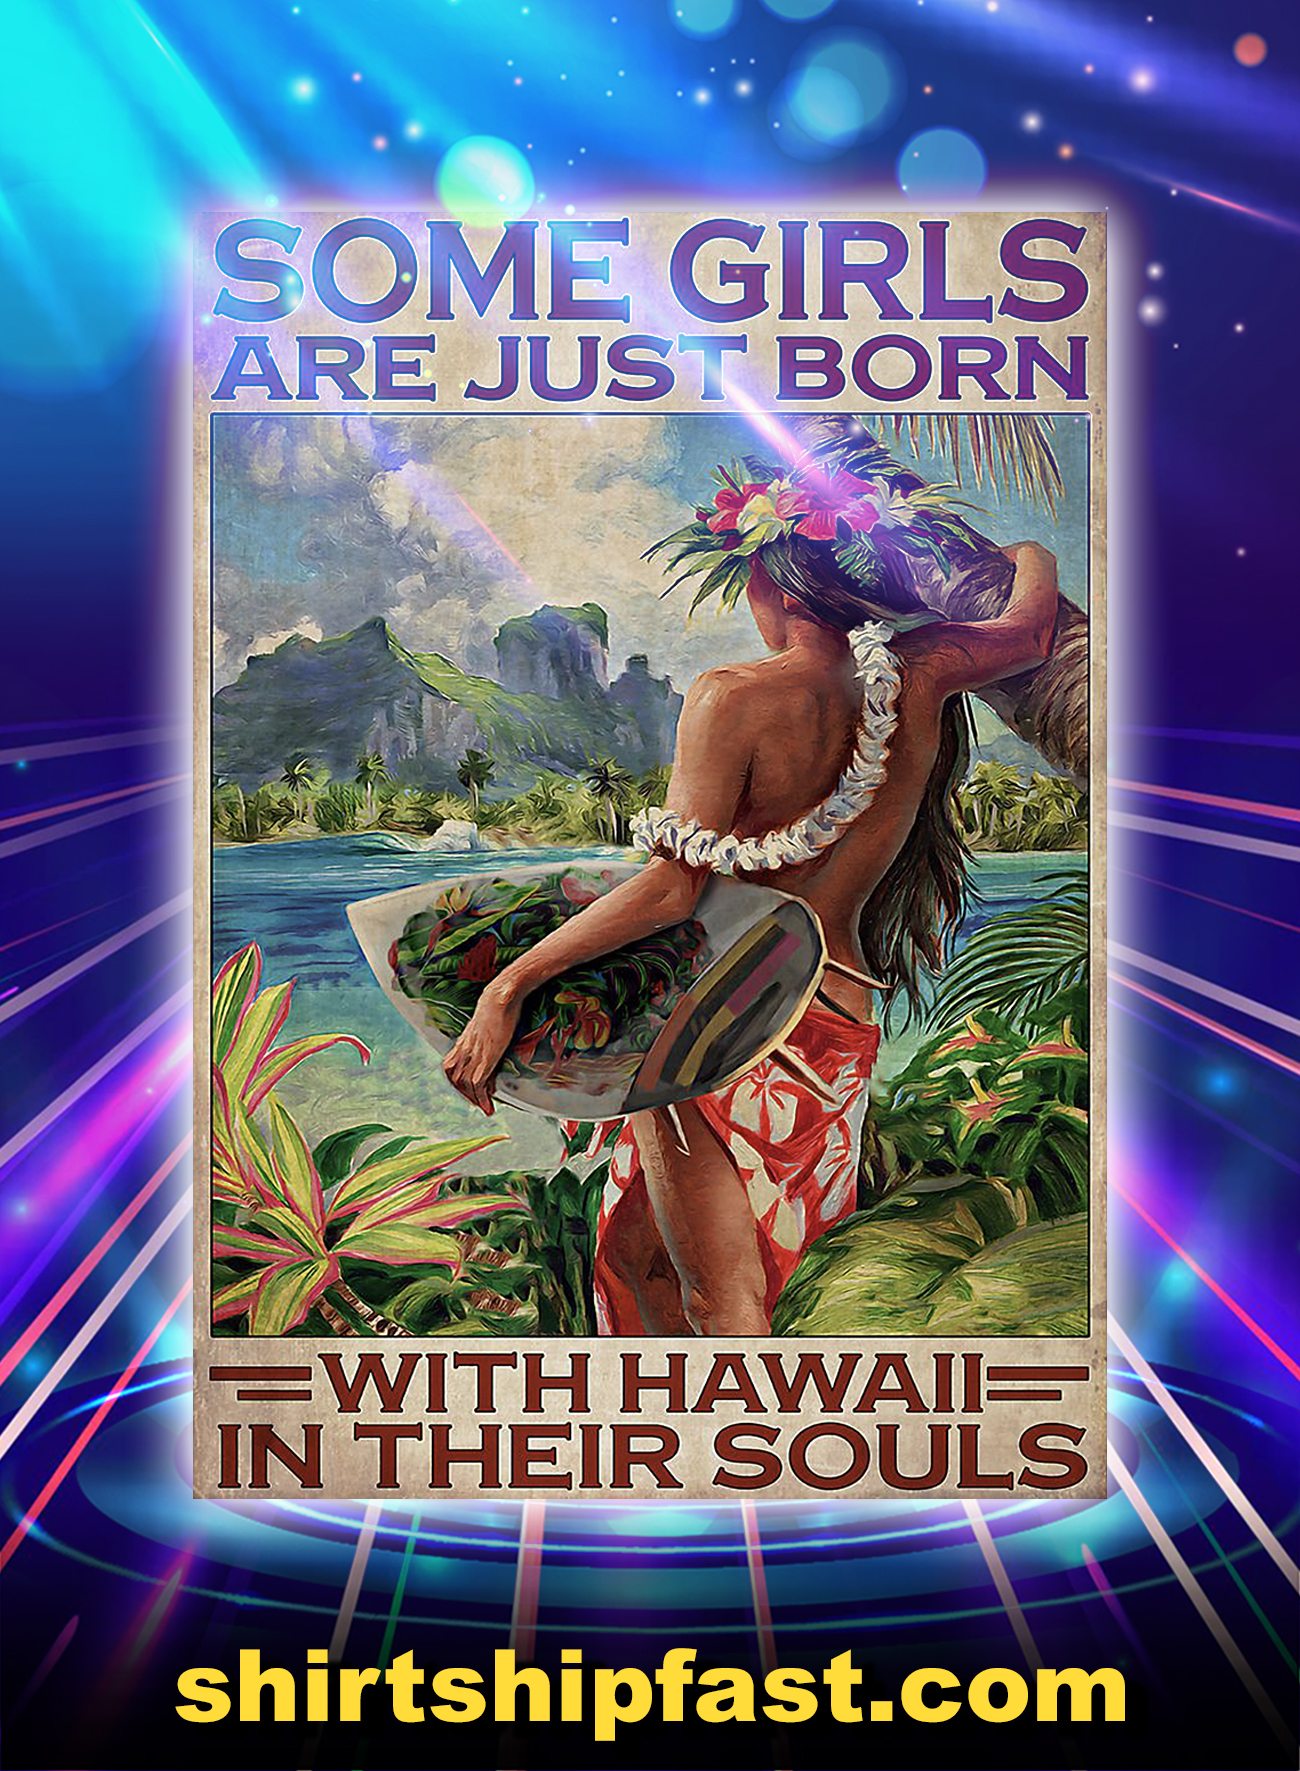 Some girls are just born with hawaii in their souls poster - A4